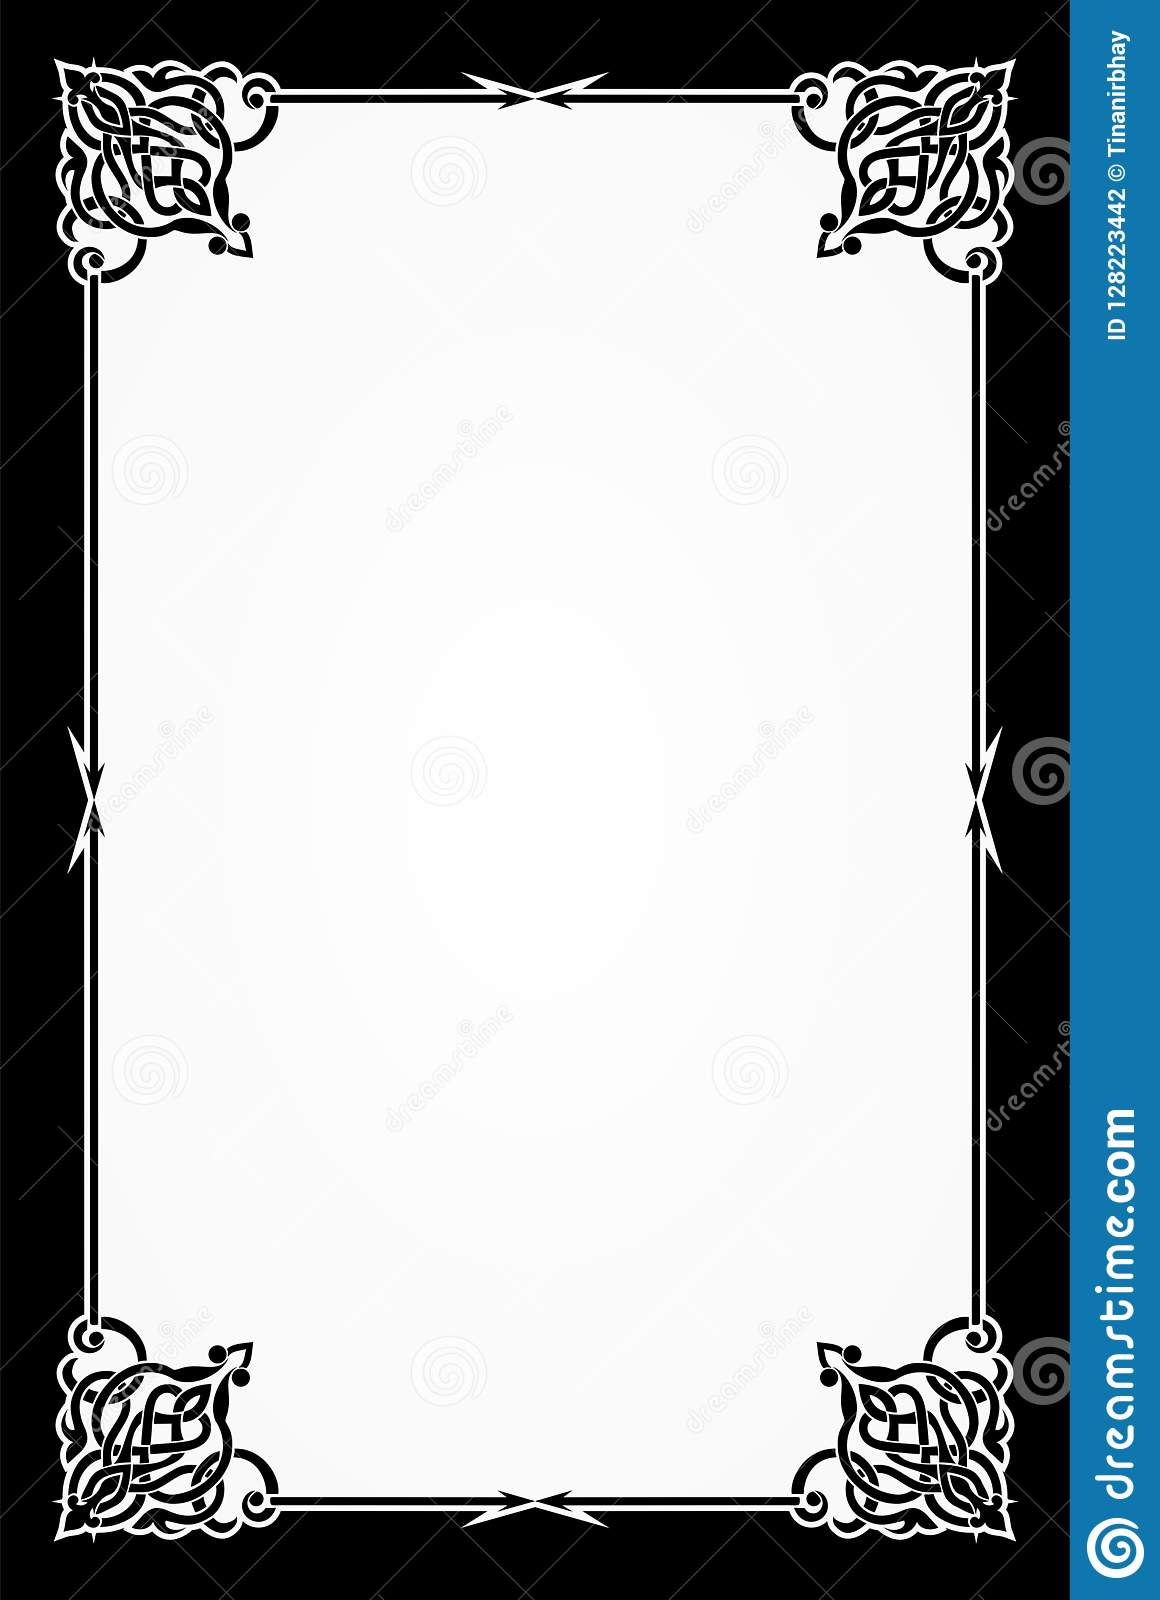 restaurant menu card frame template stock vector - illustration of